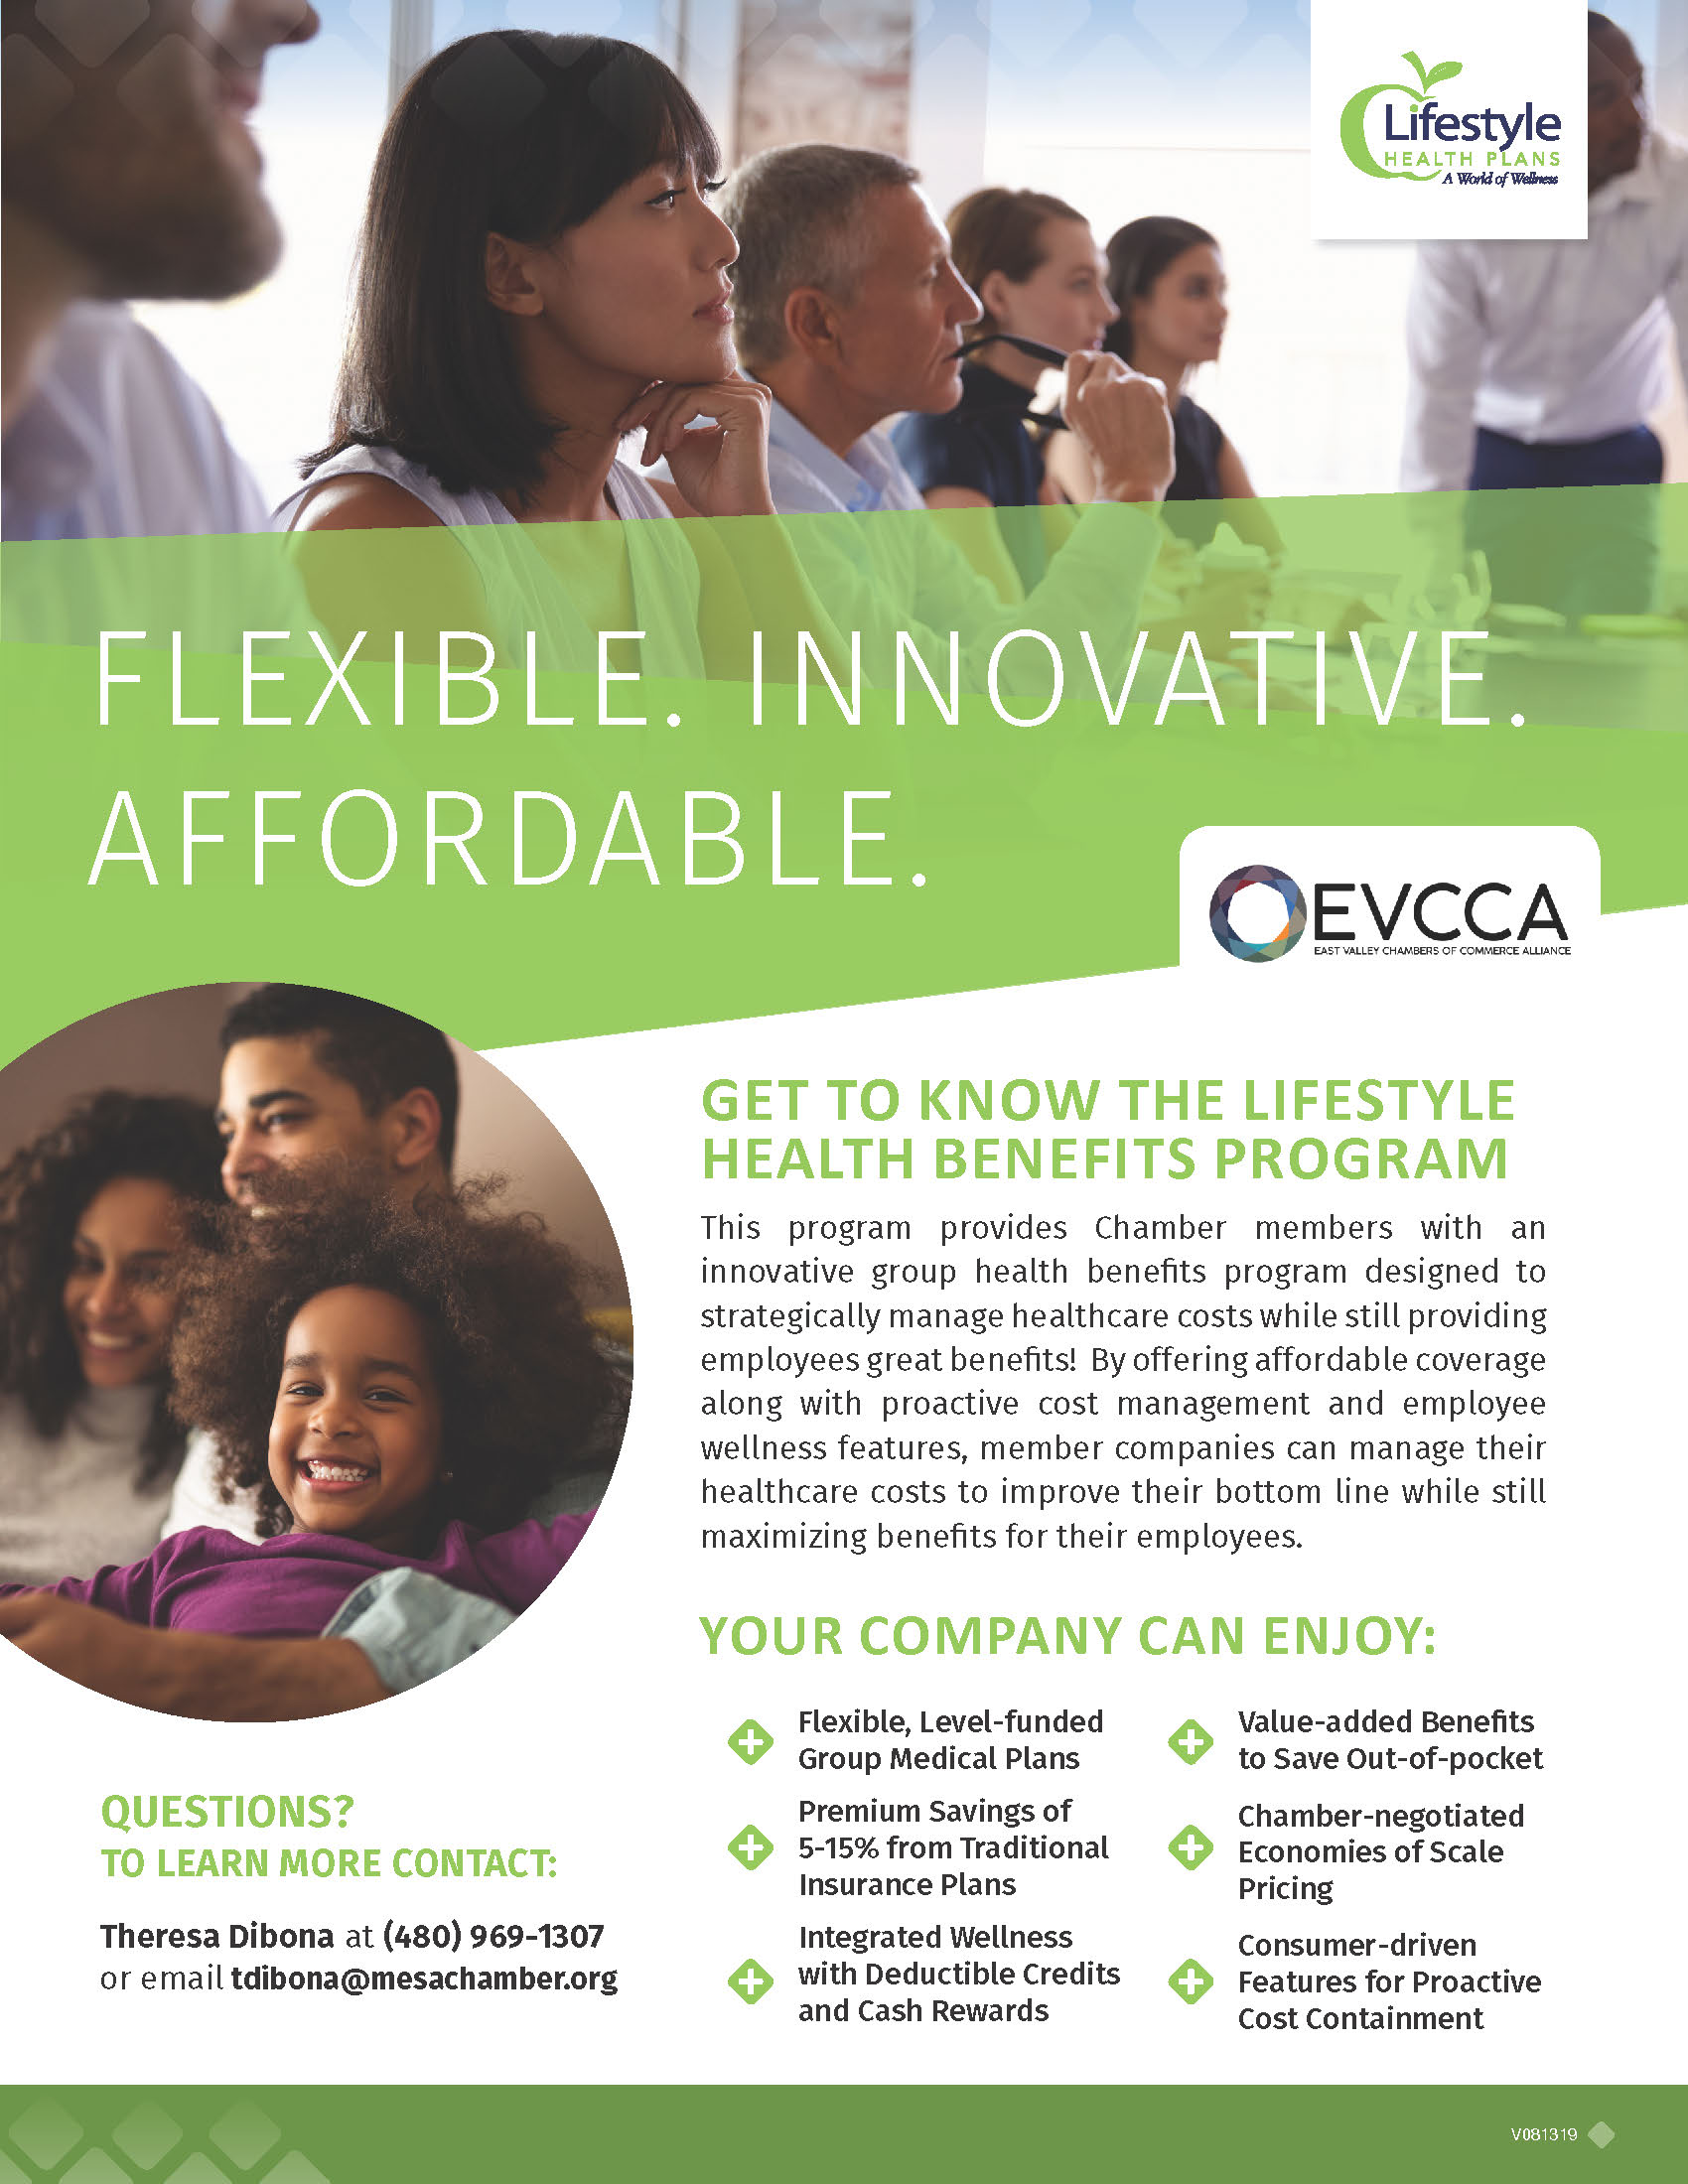 EVCCA Healthcare Overview